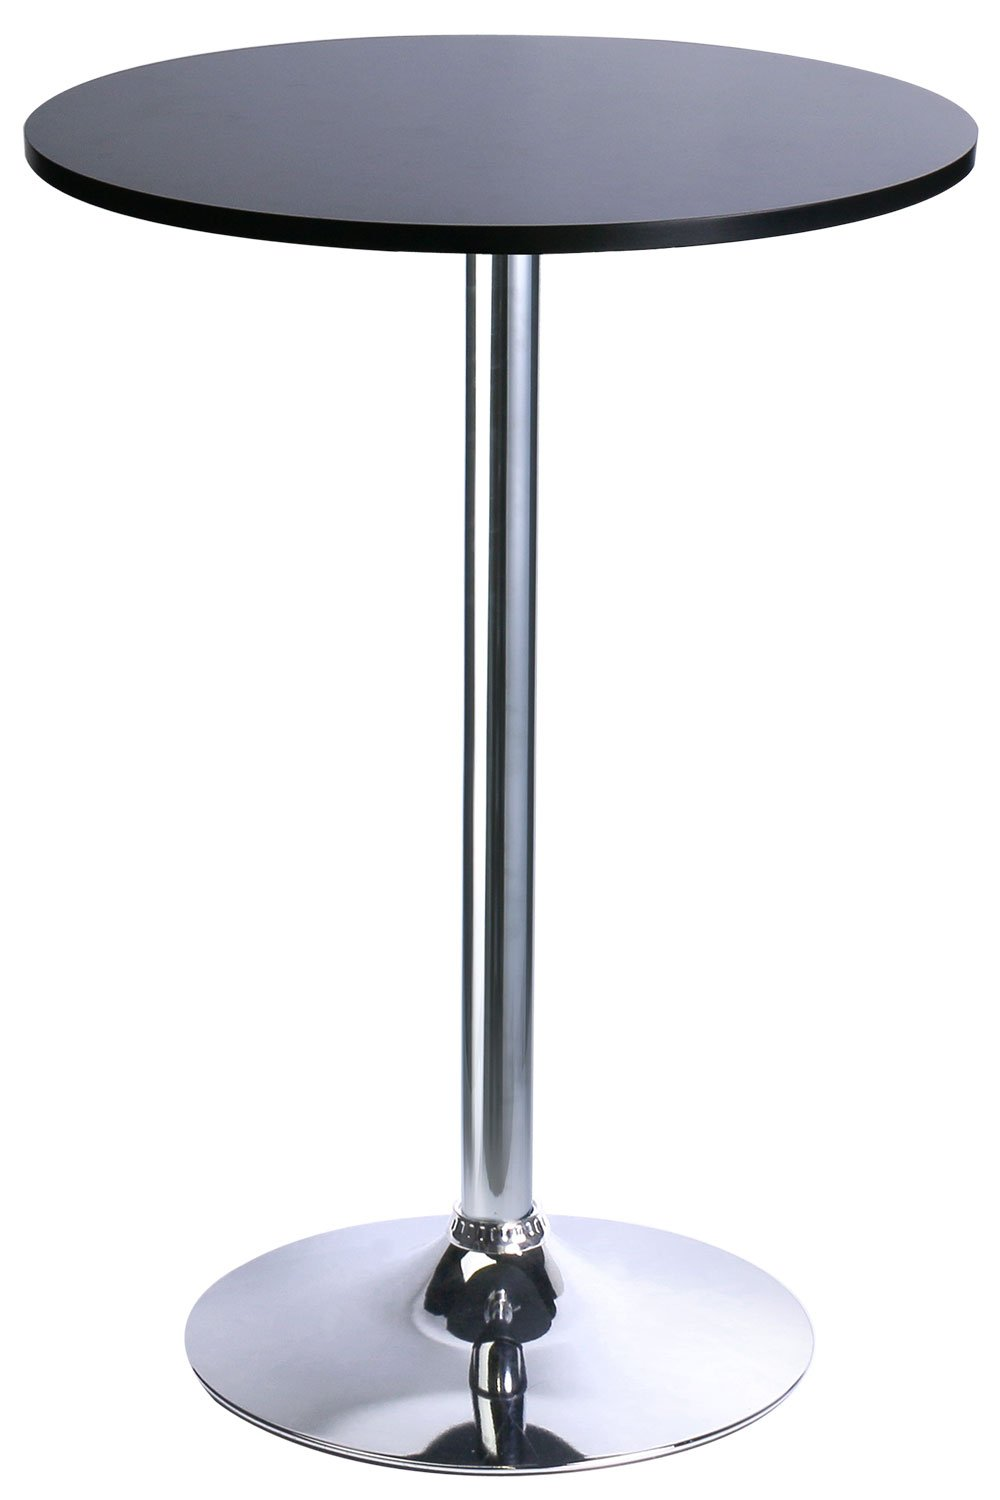 Leopard MDF Round Top Not Adjustable (41 INCHES Height) Bar Table, Pub Table with Silver Leg and Base (Black) by Leopard Outdoor Products